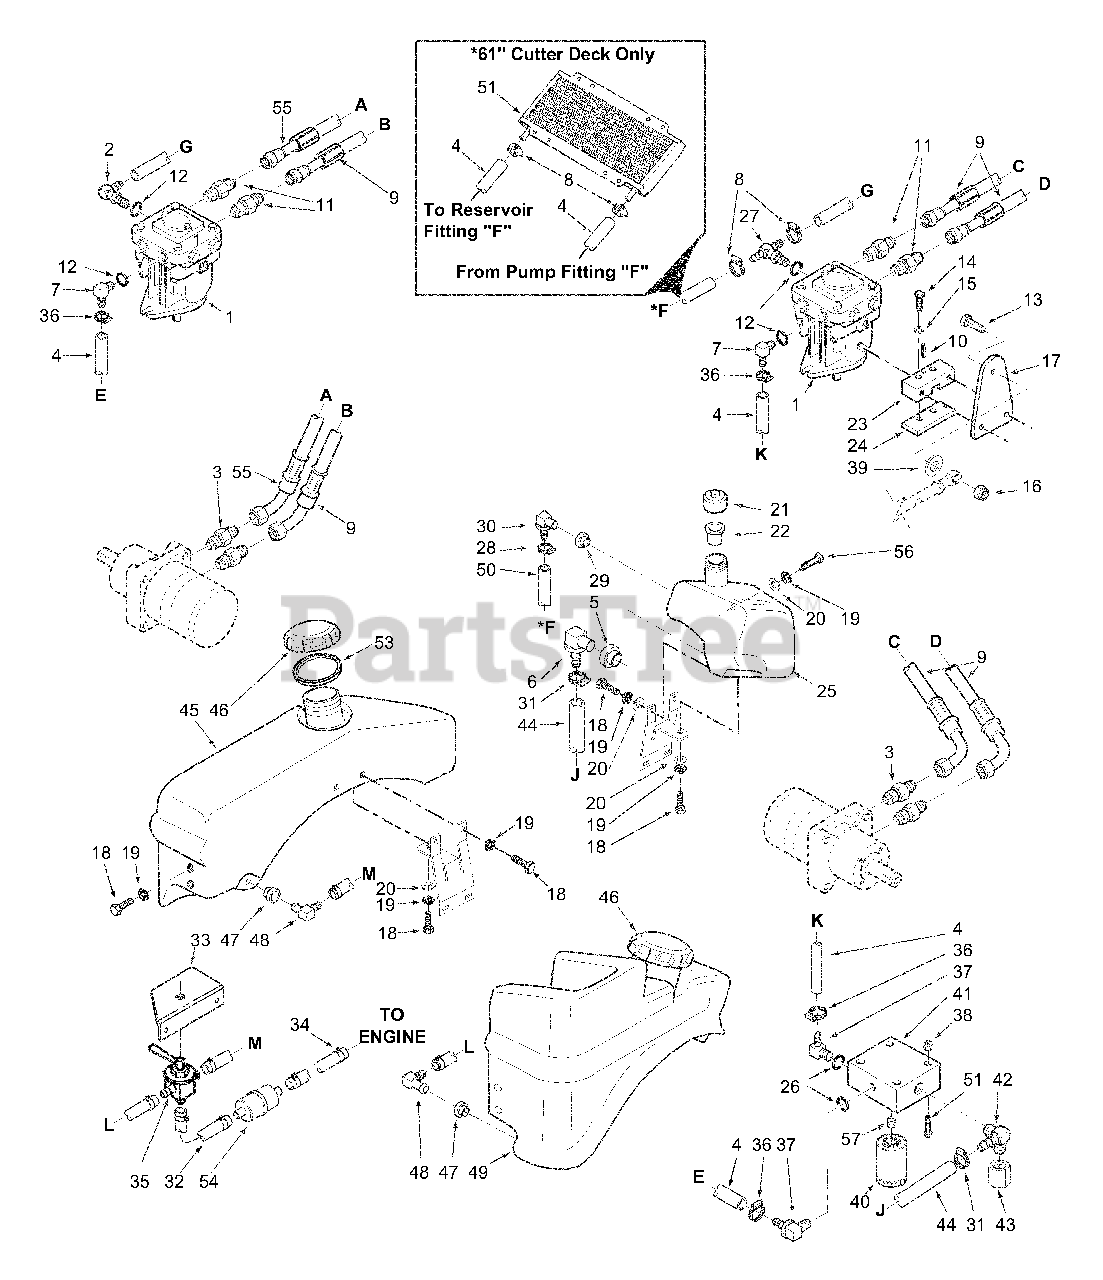 Scag Parts On The Fuel And Hydraulic System Diagram For